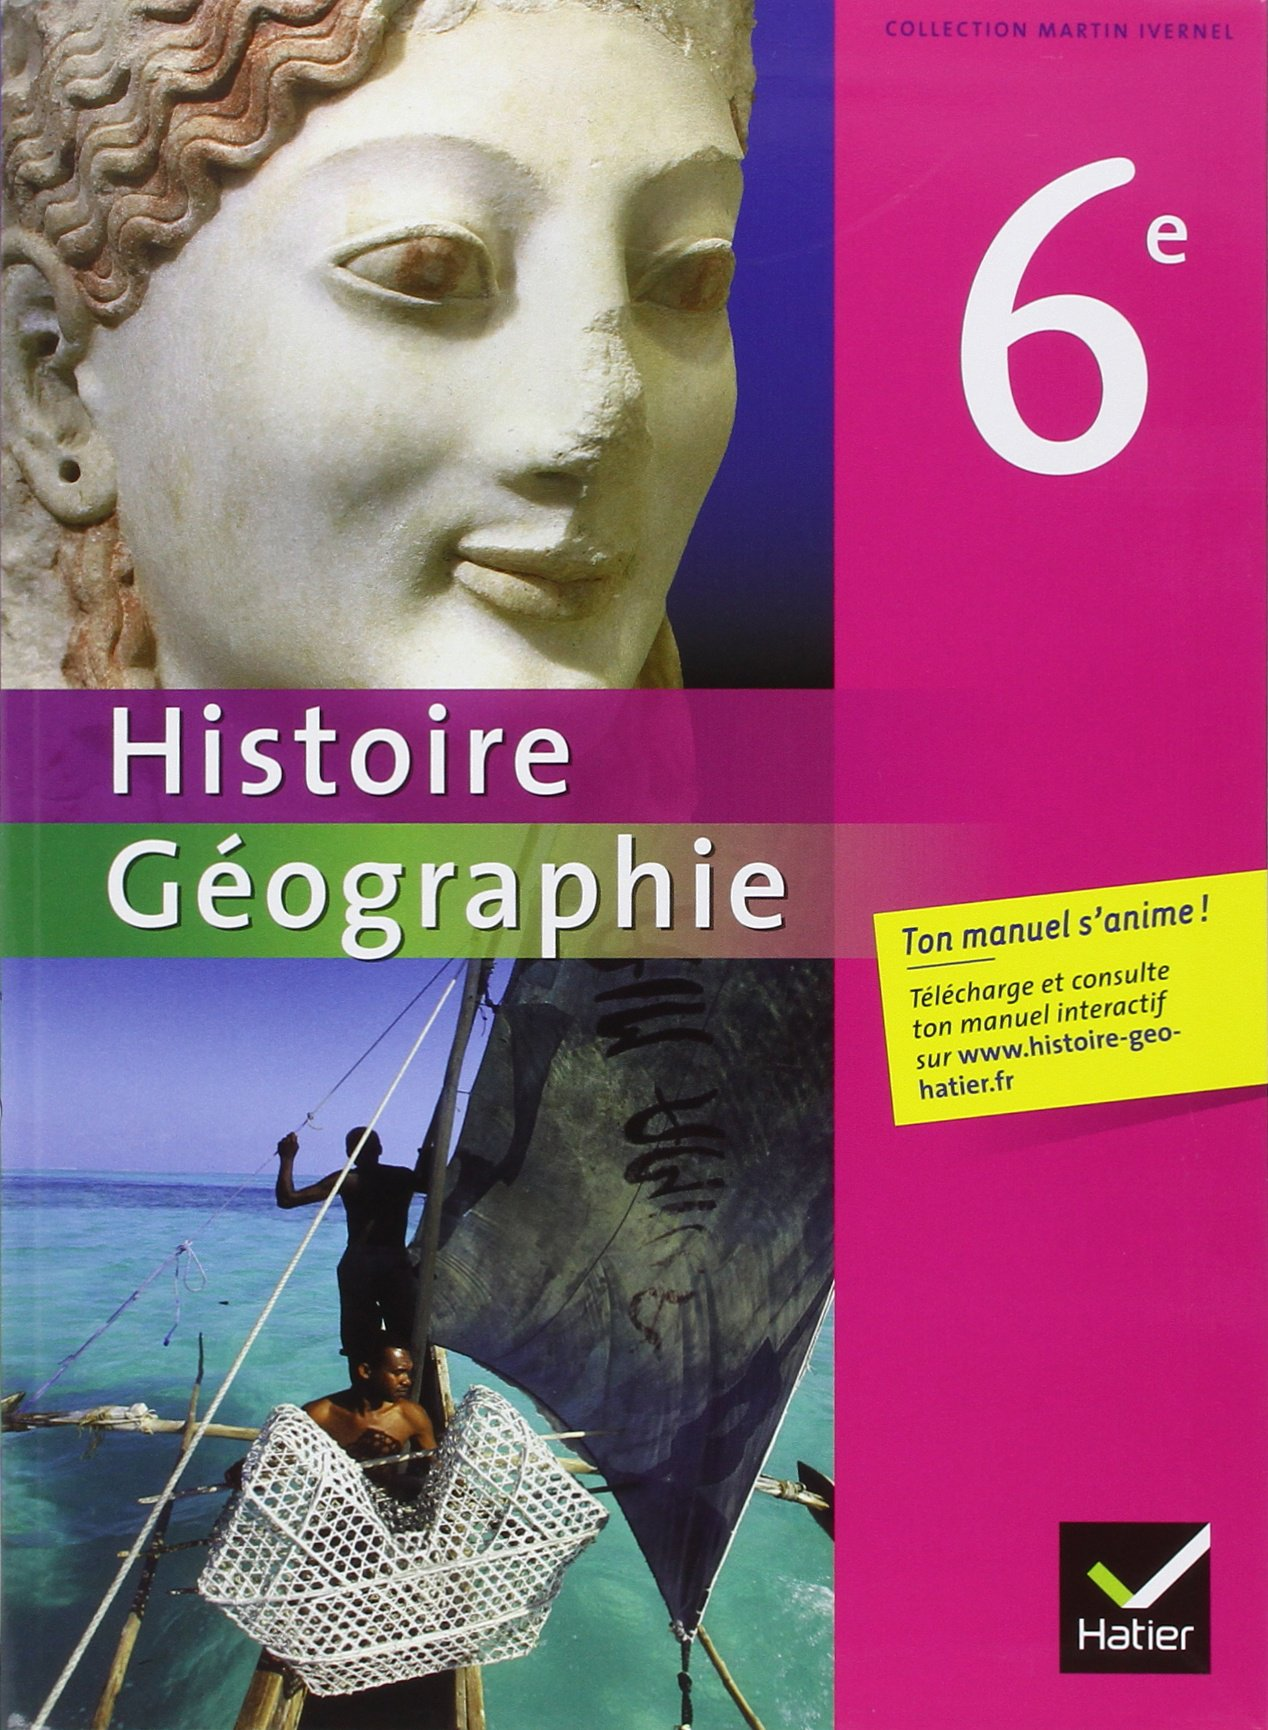 Histoire Geographie 6e Martin Ivernel Collectif